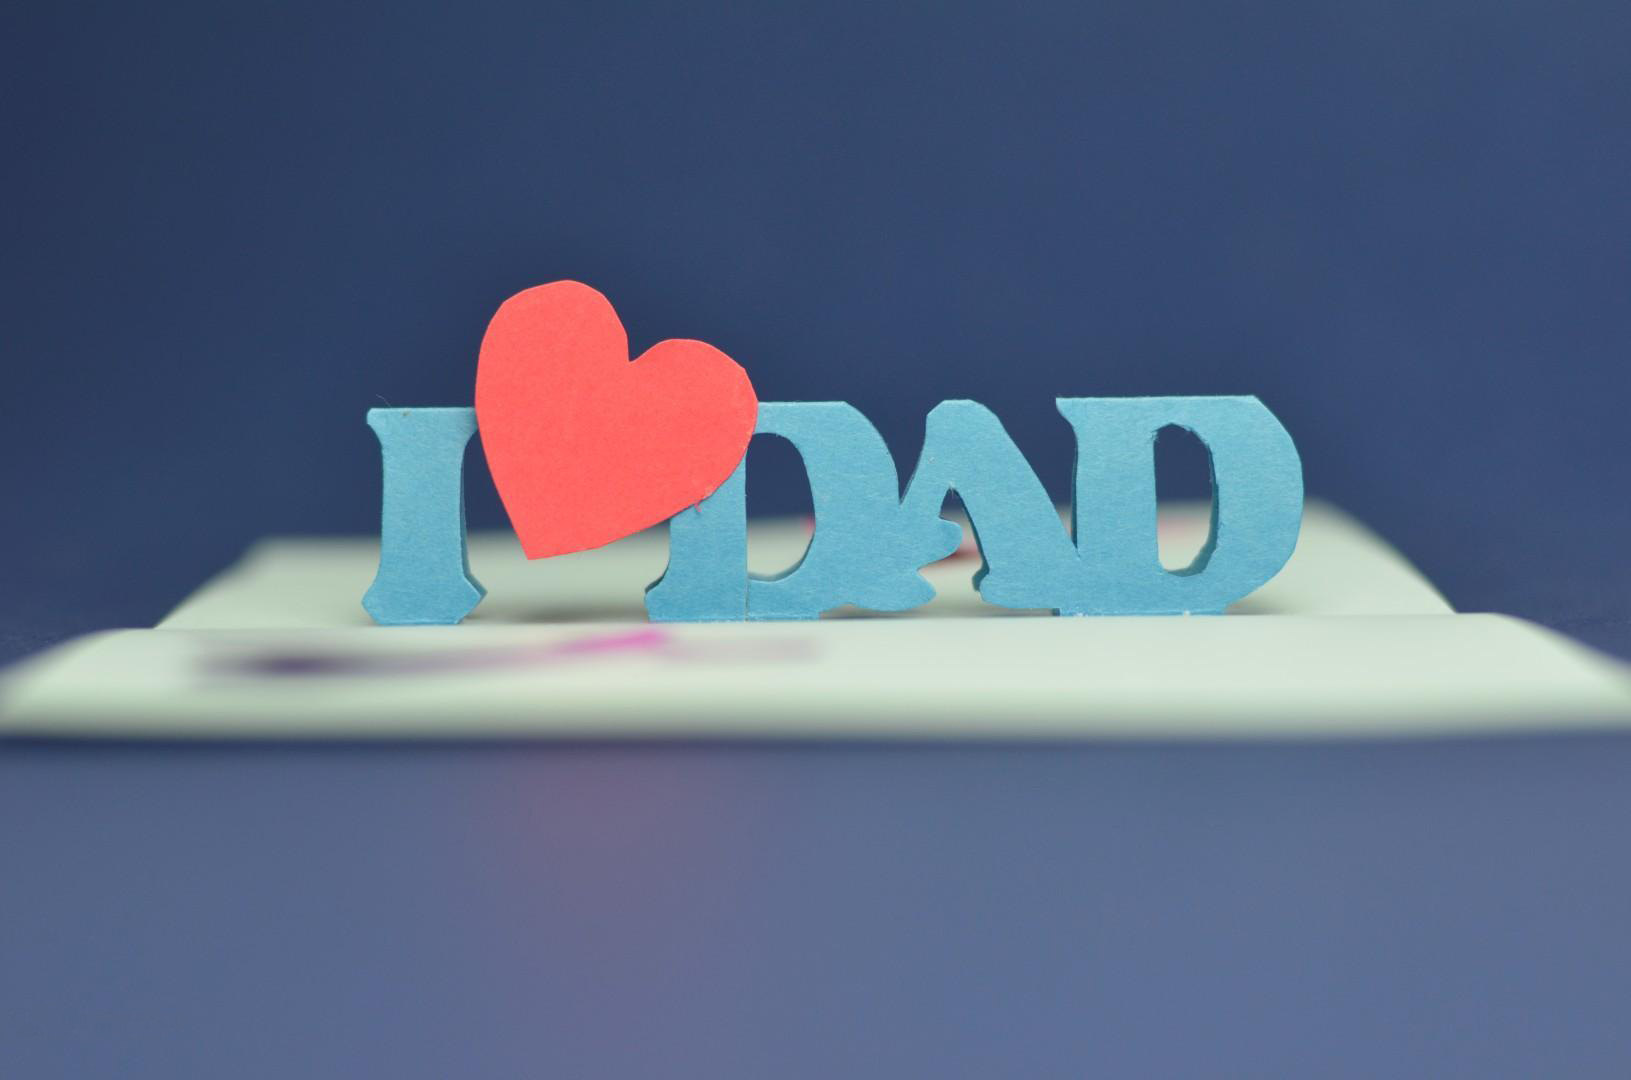 Carte Cadeau Wish Happy Fathers Day 2016 Hd Wallpapers Pictures Images With